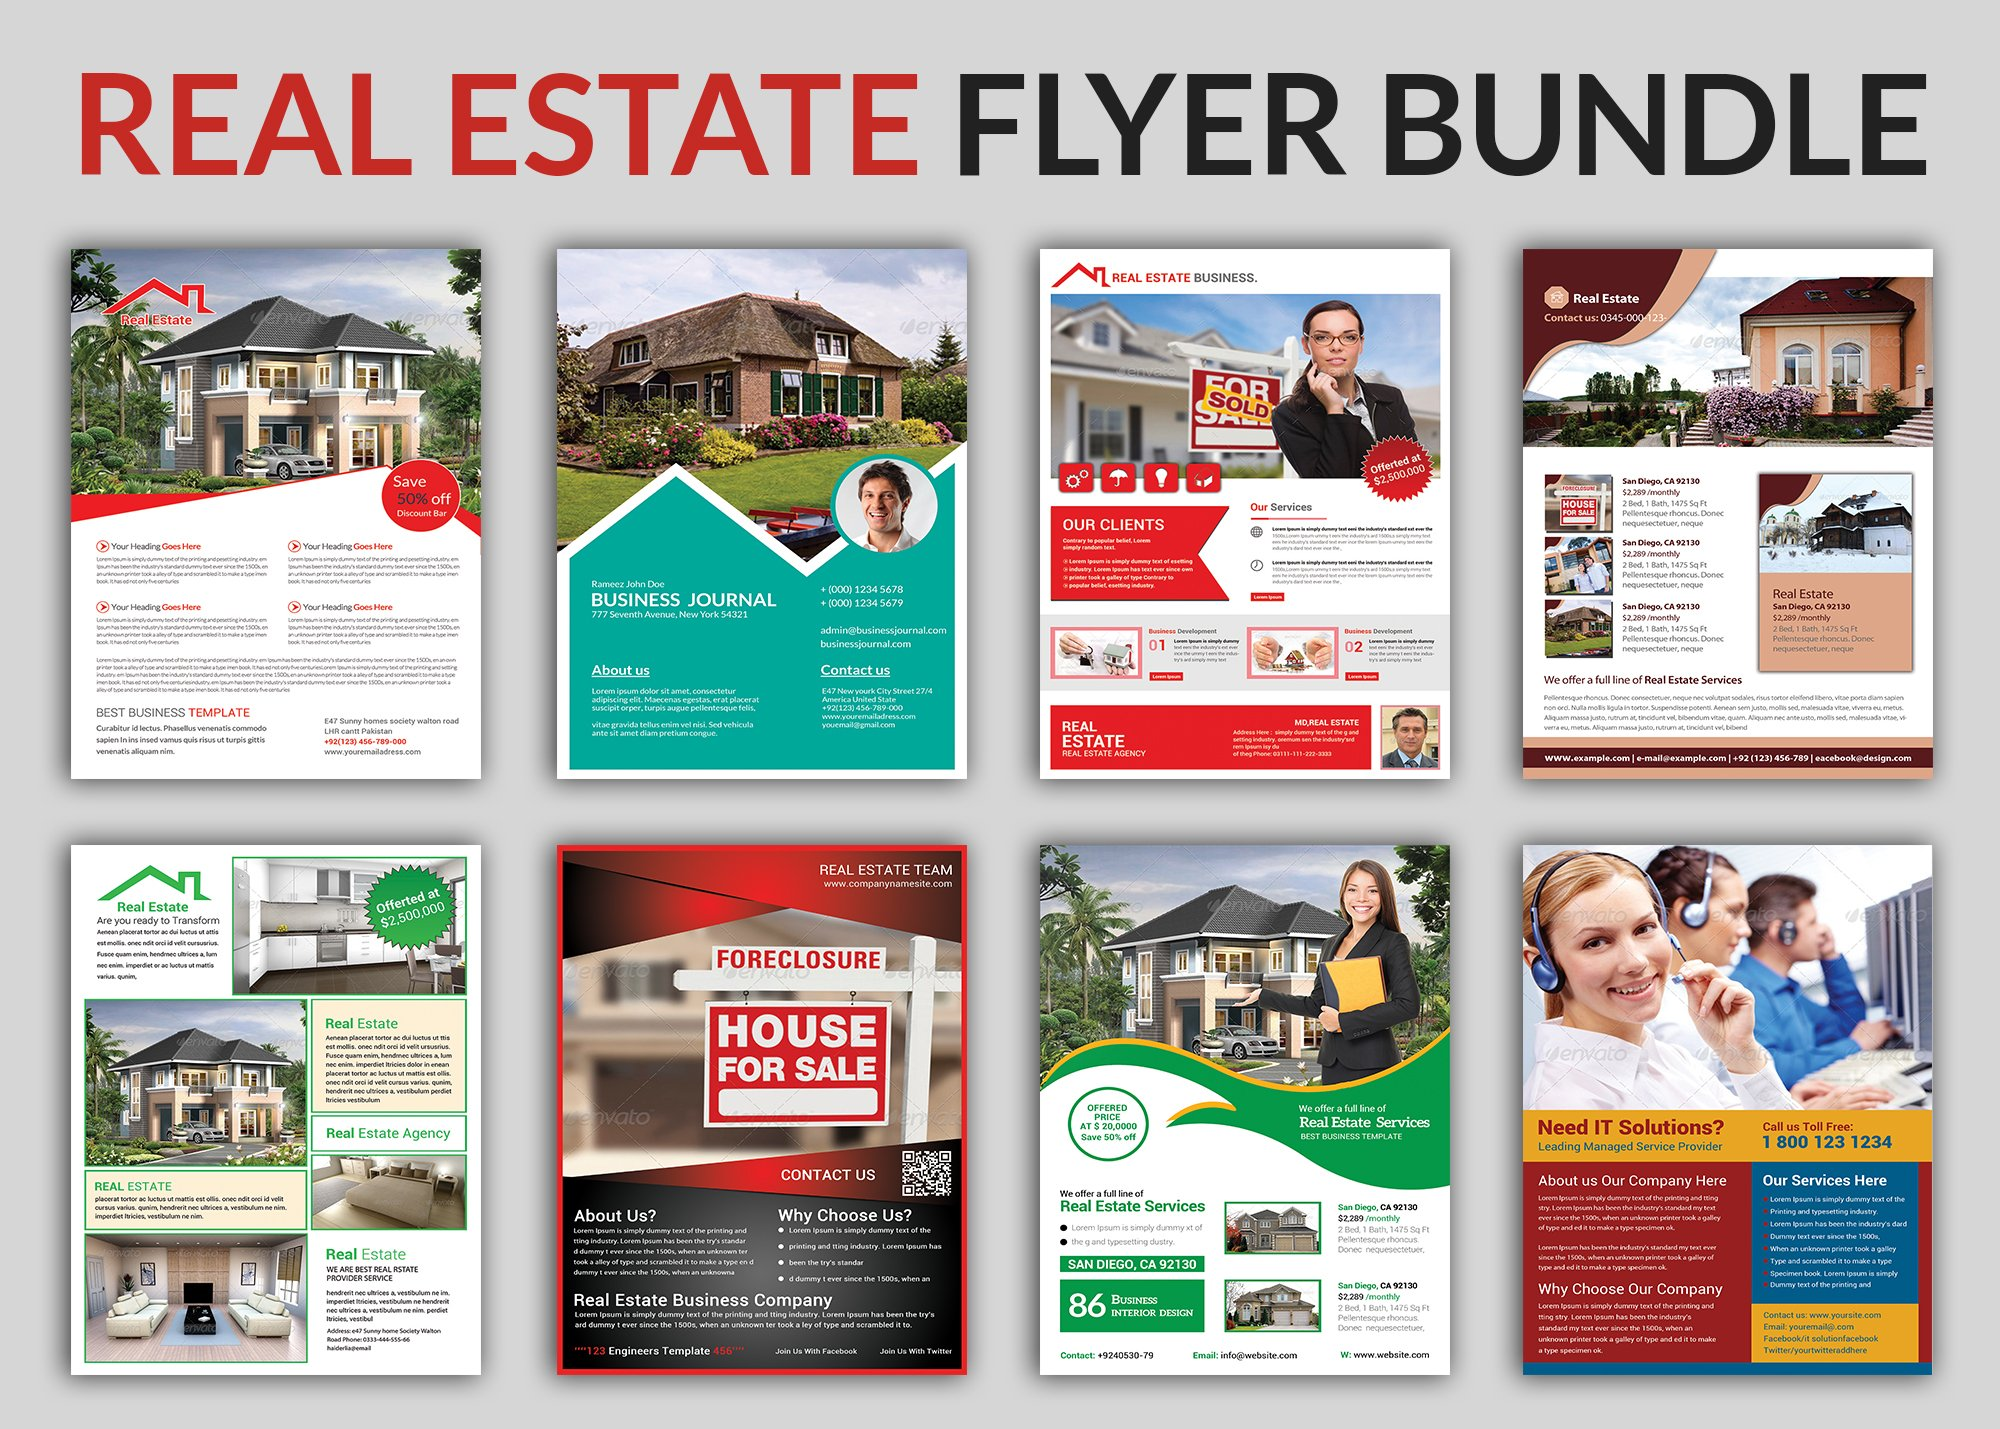 Real Estate Flyer Bundle Templates Flyer Templates Creative Market - Sell your house flyer template